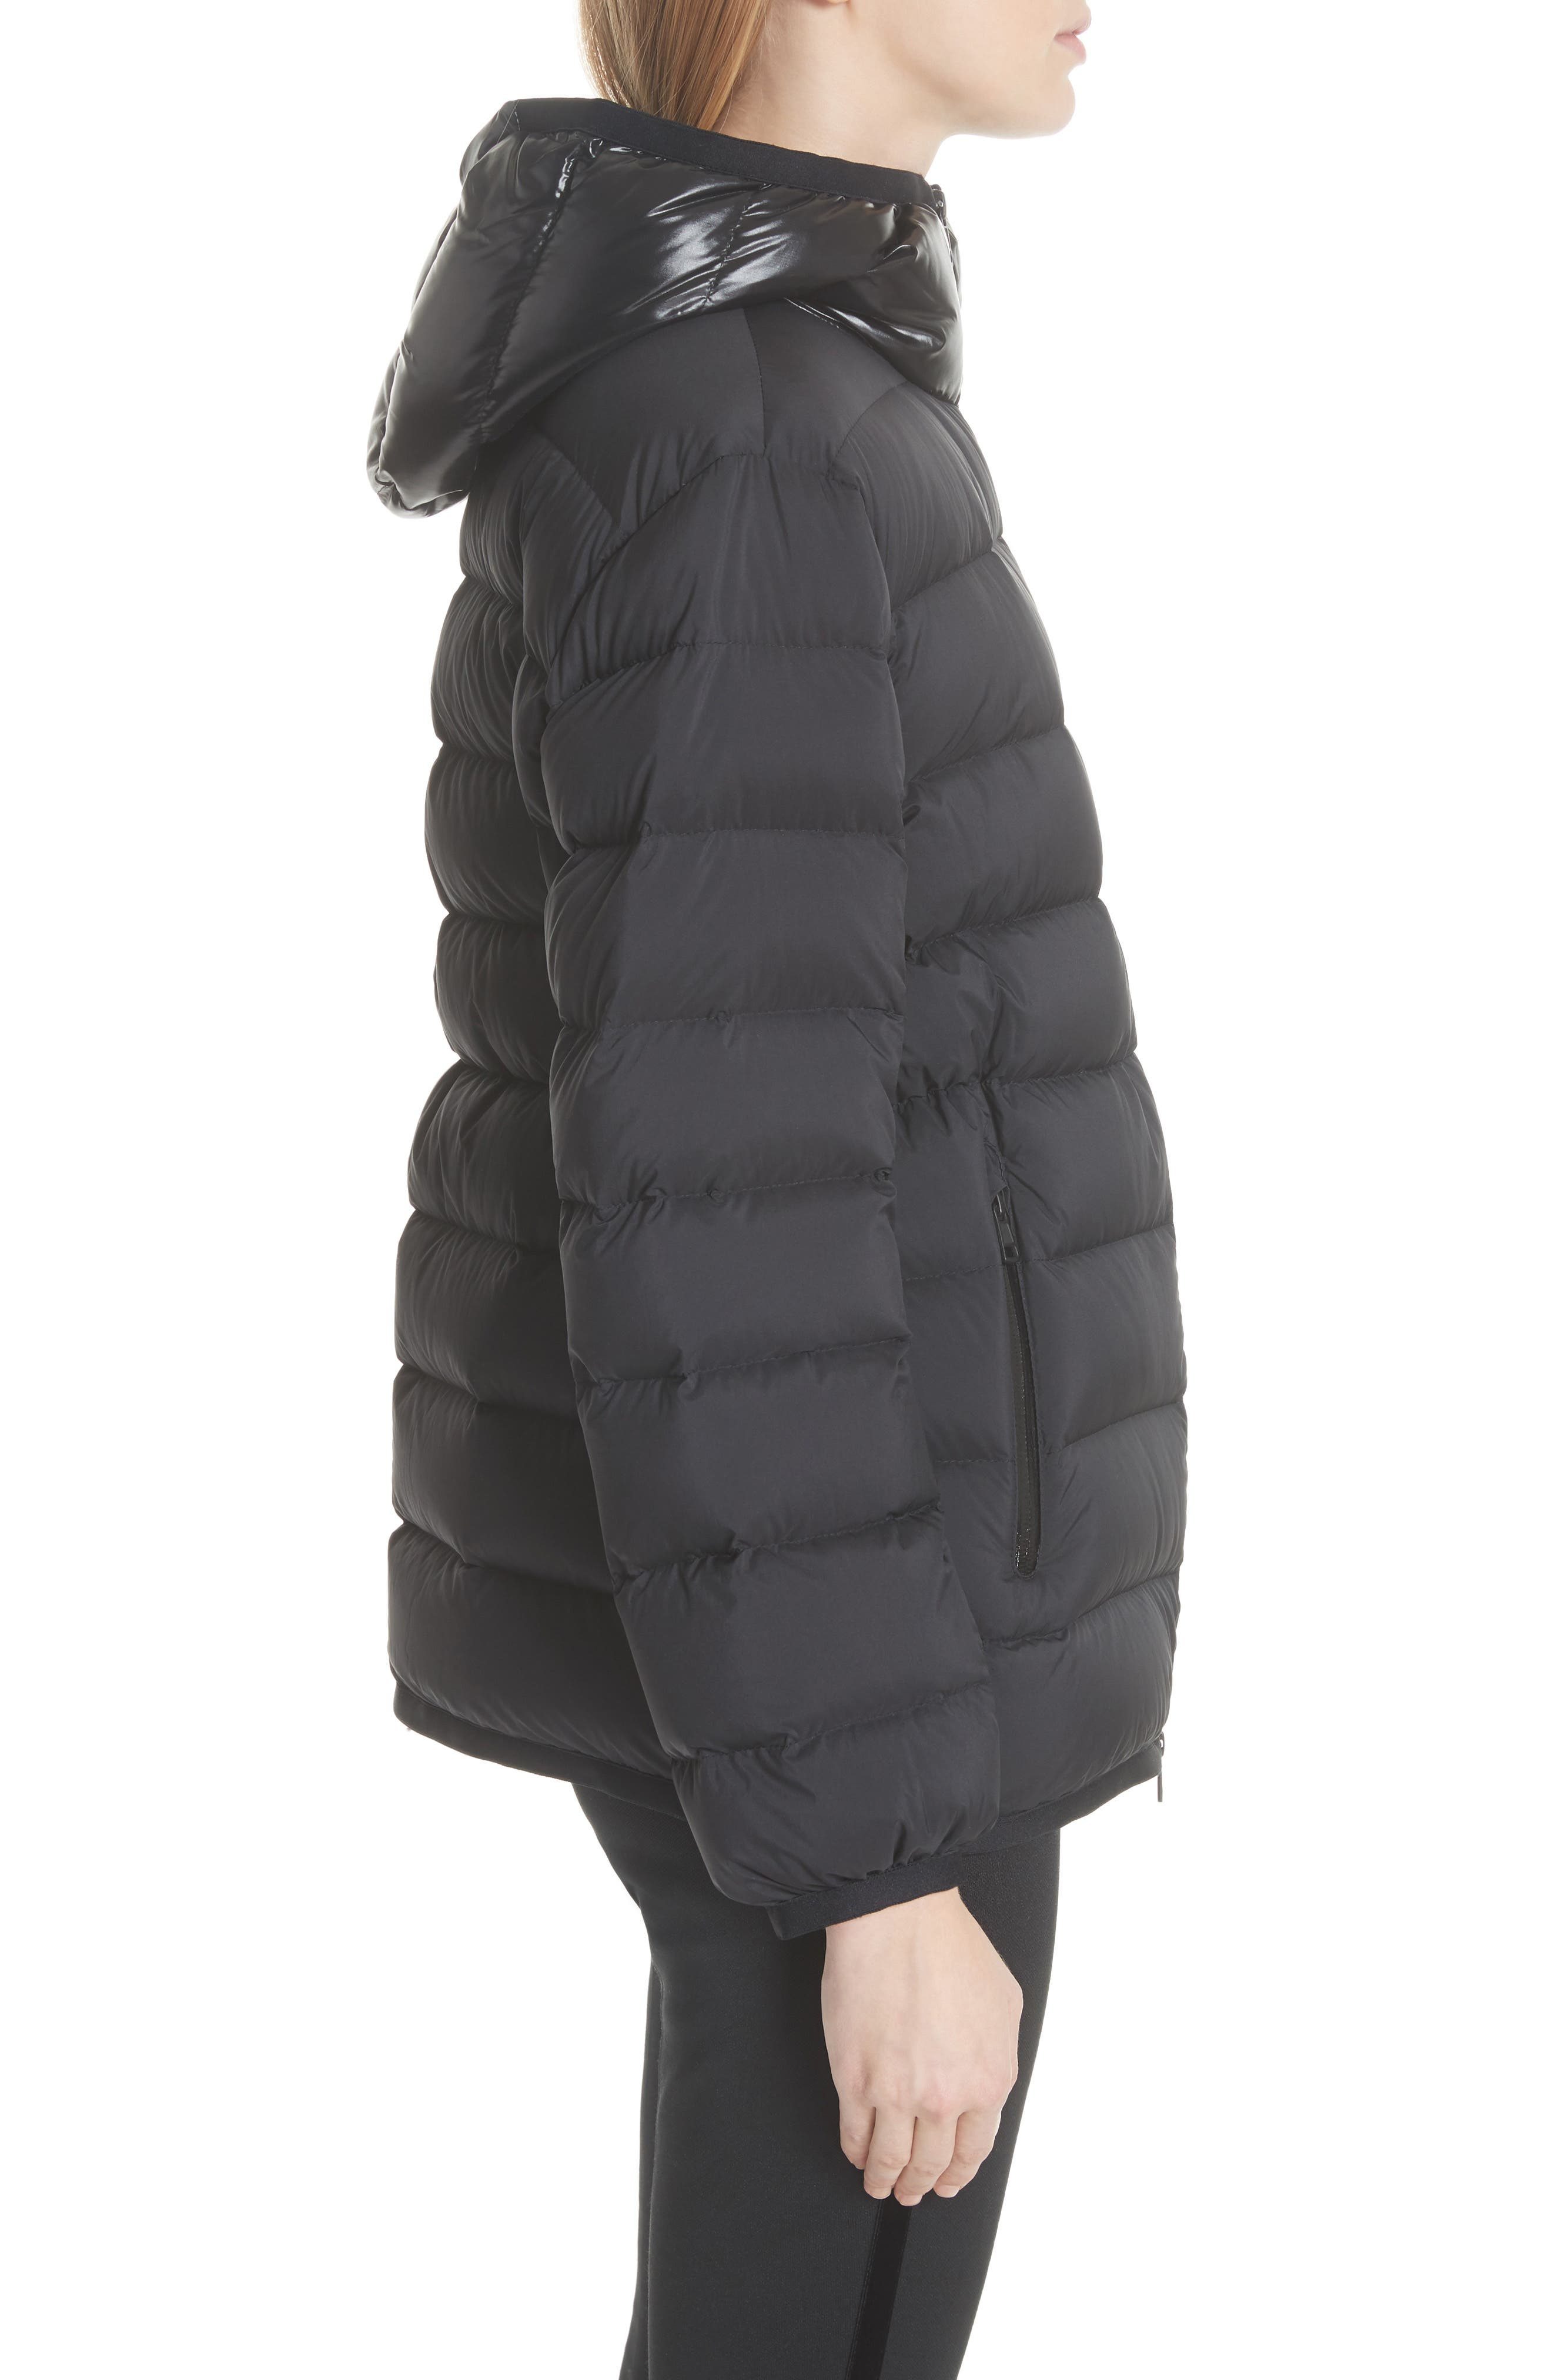 MONCLER, Goeland Quilted Down Jacket, Alternate thumbnail 4, color, 001